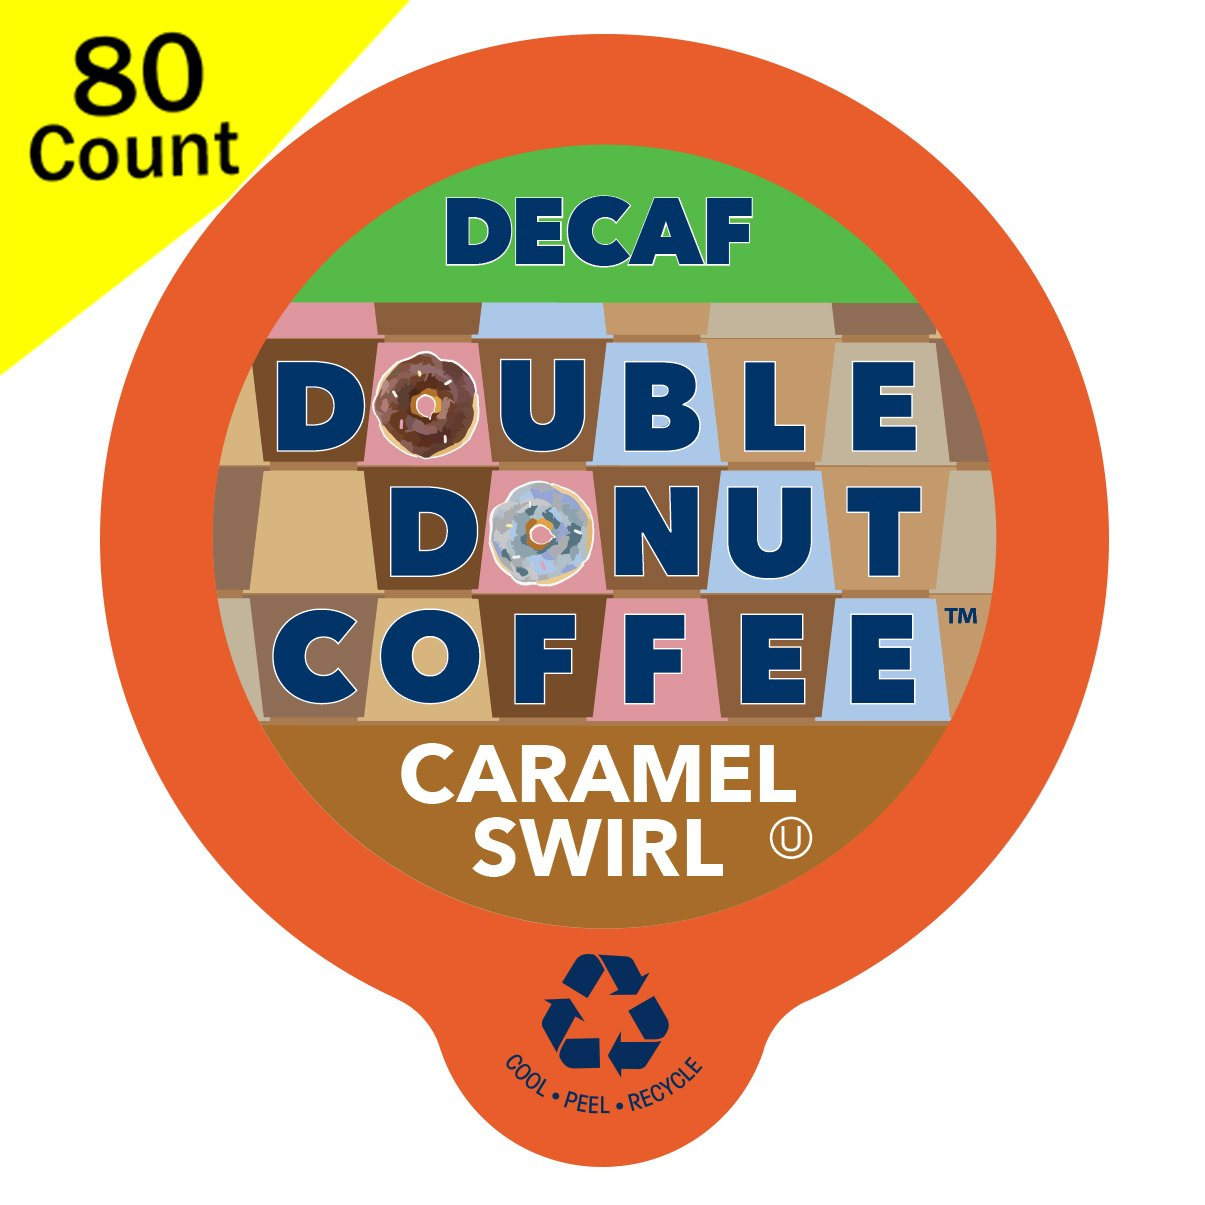 Double Donut Decaf Flavored Coffee, in Recyclable Single Serve Cups for Keurig K-Cup Brewers, 80 Count (Decaf Caramel Swirl) by Double Donut Coffee